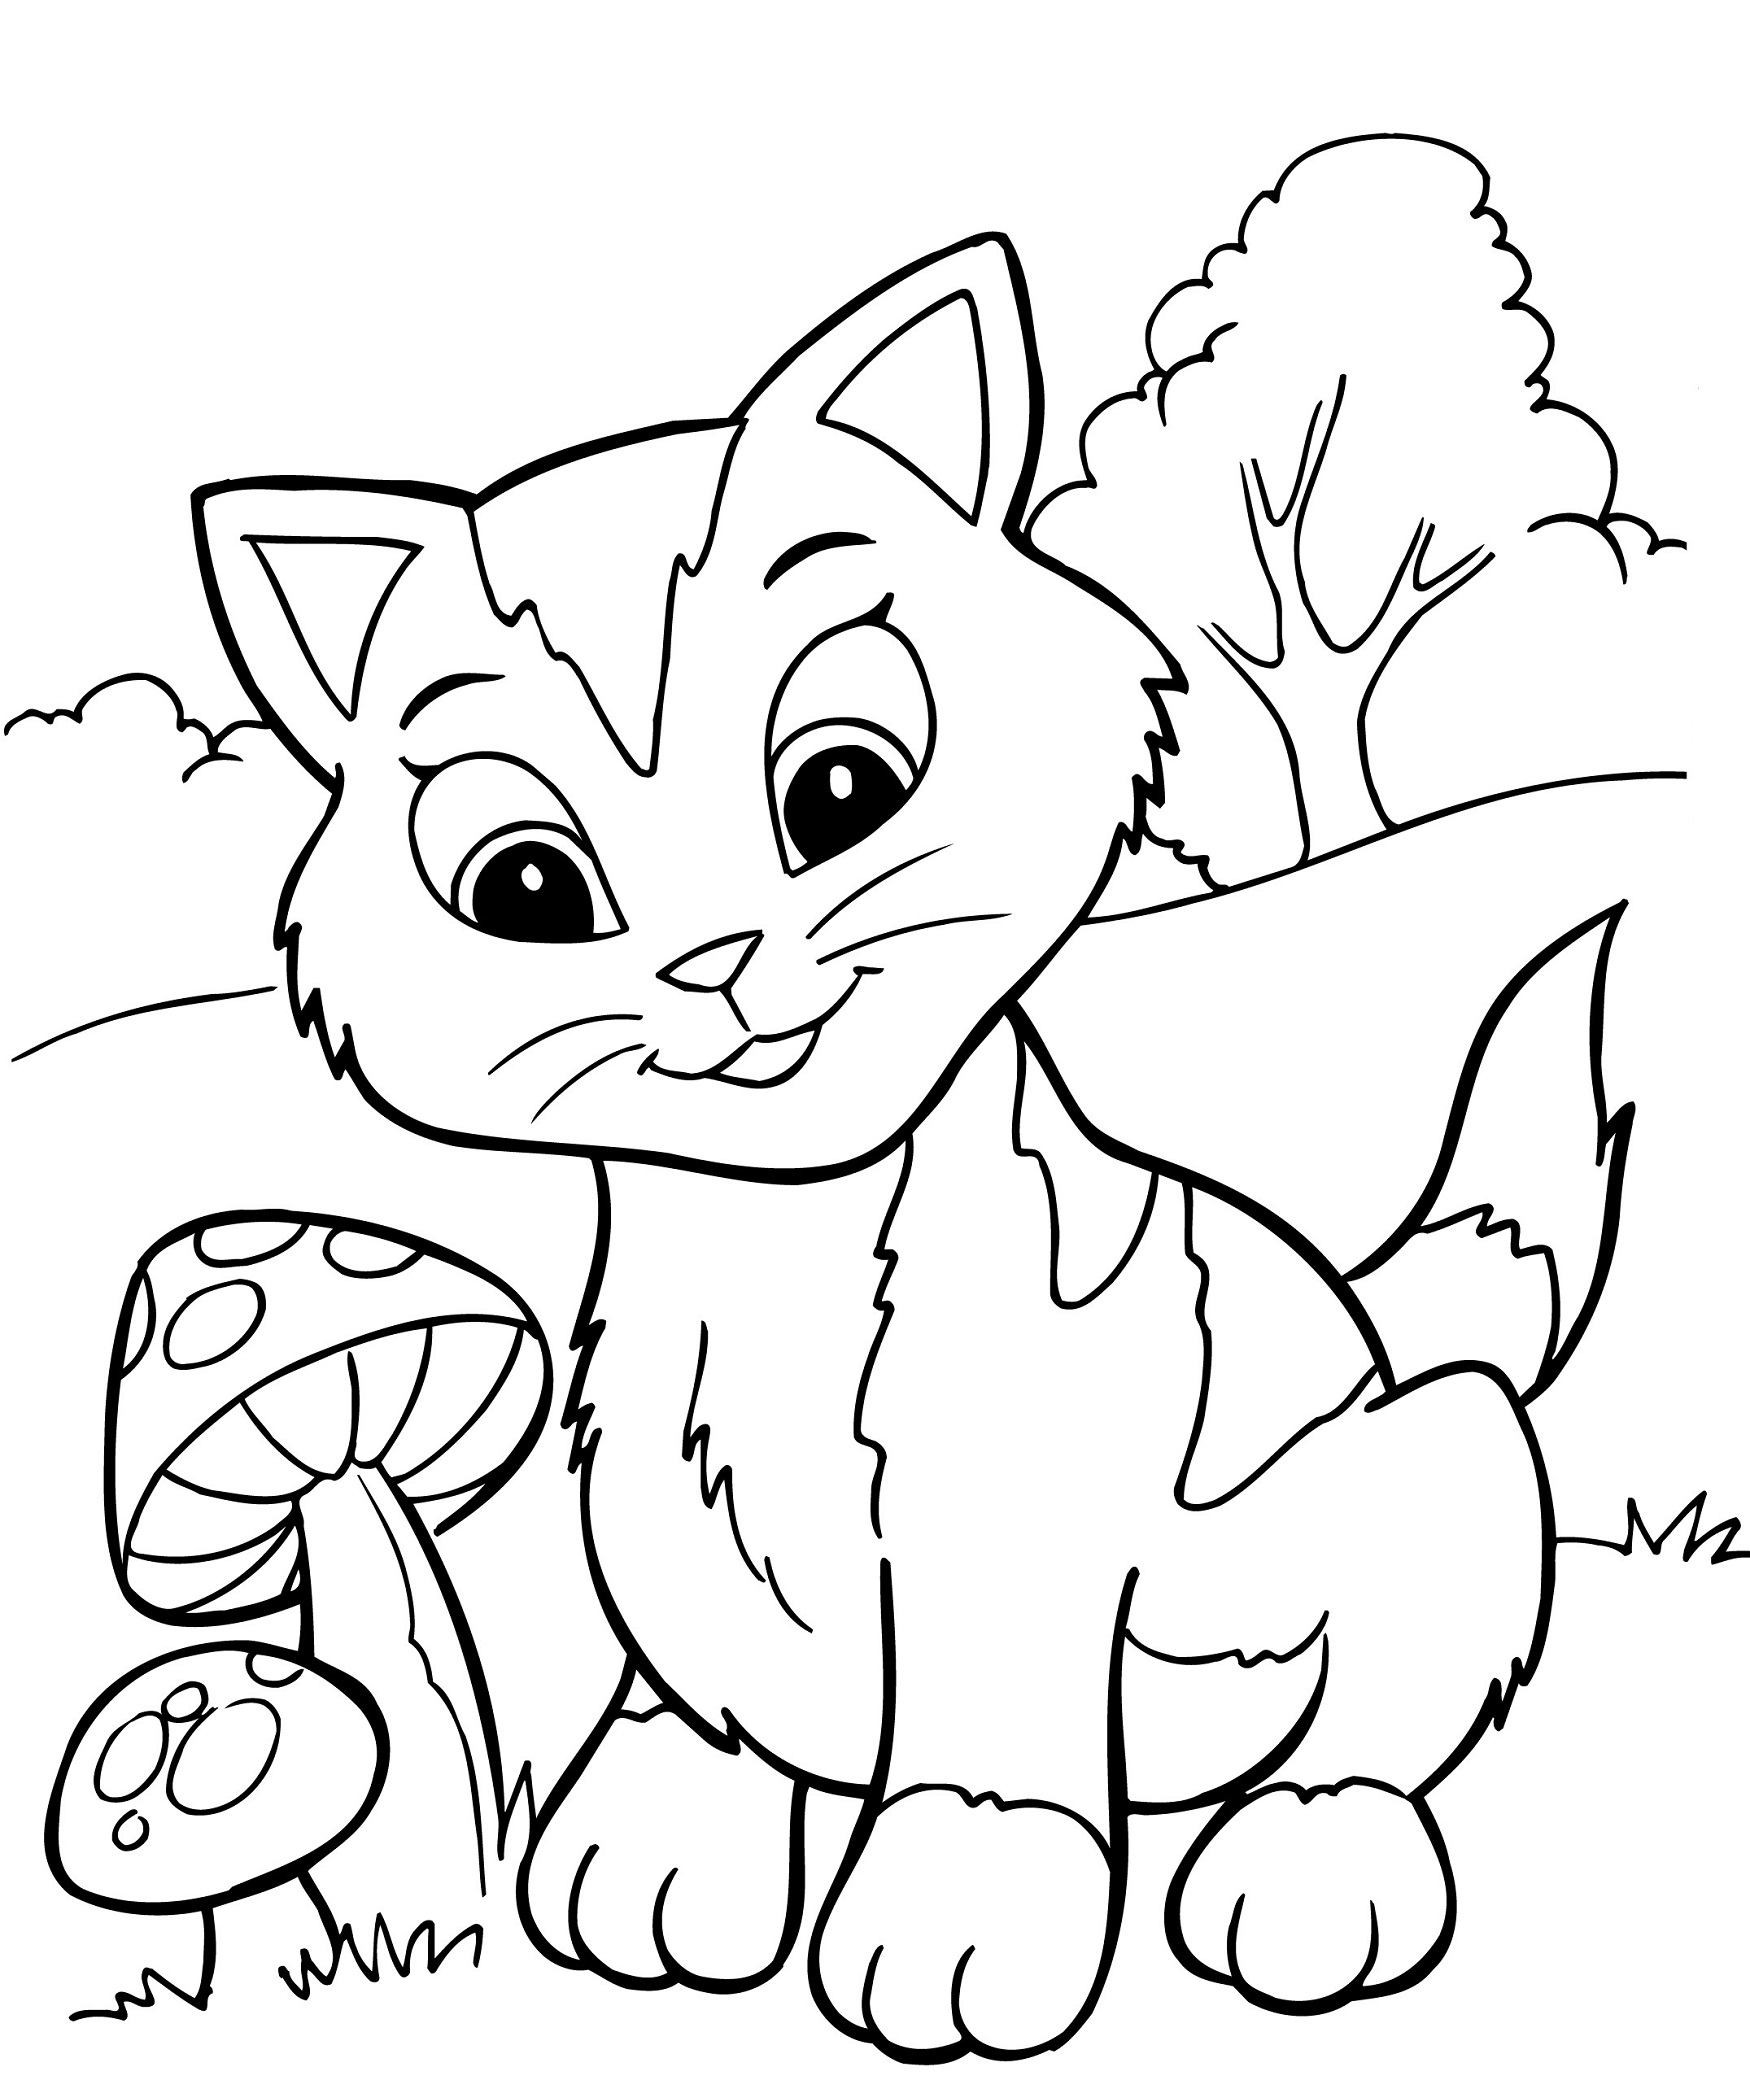 cat coloring picture kitten coloring pages best coloring pages for kids picture coloring cat